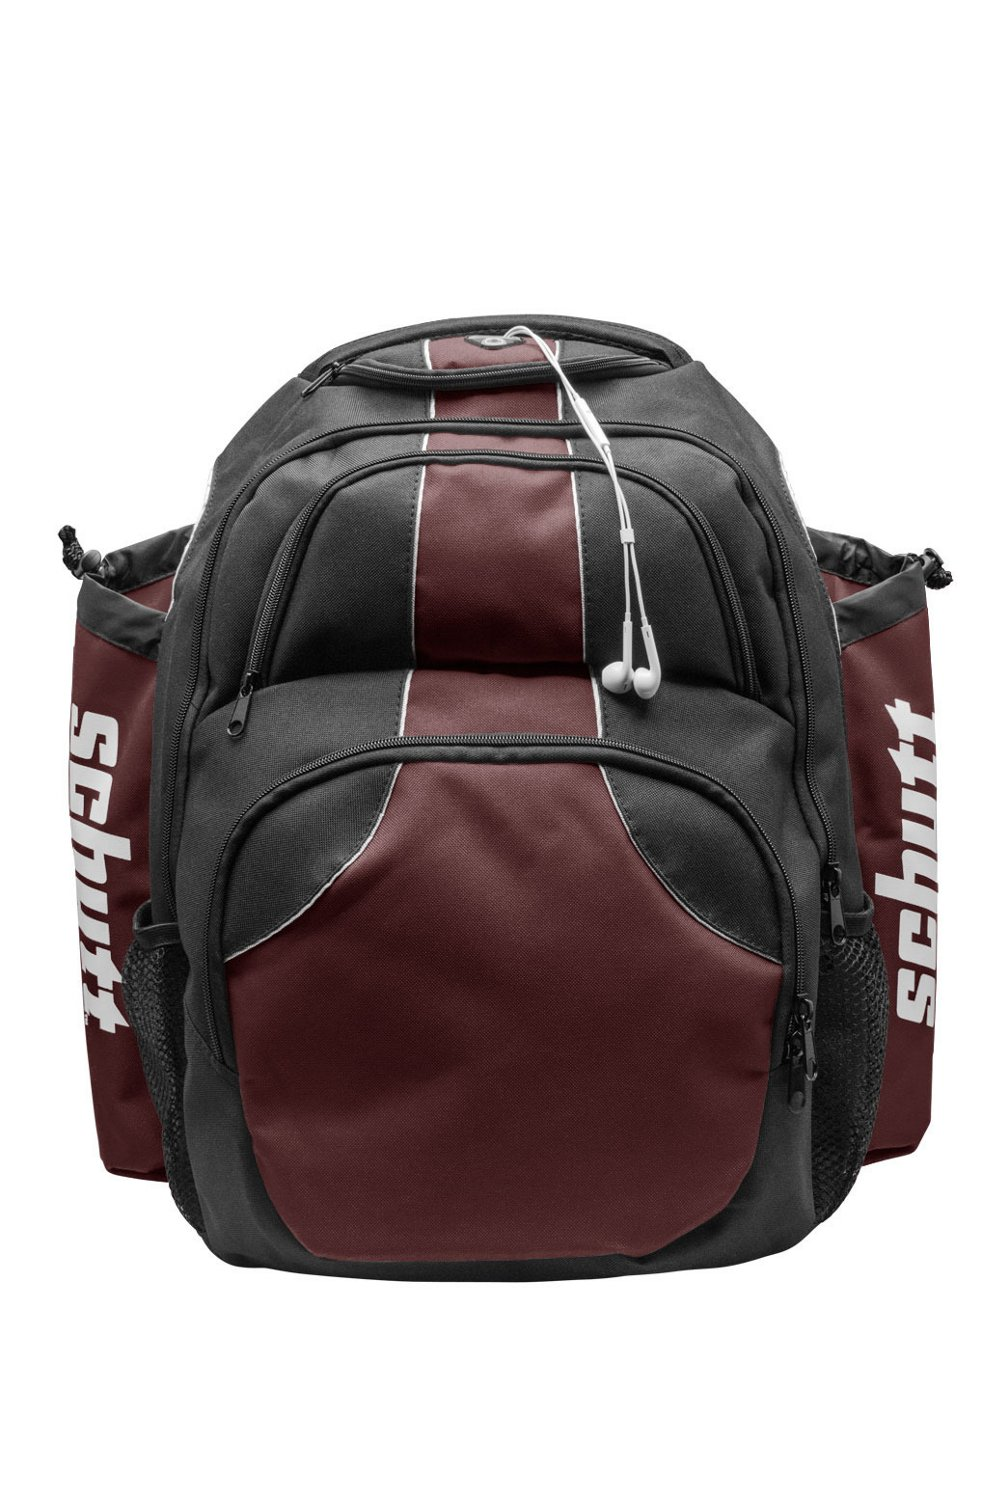 eafbdba3c0 Display product reviews for Schutt Large Travel Bat Bag